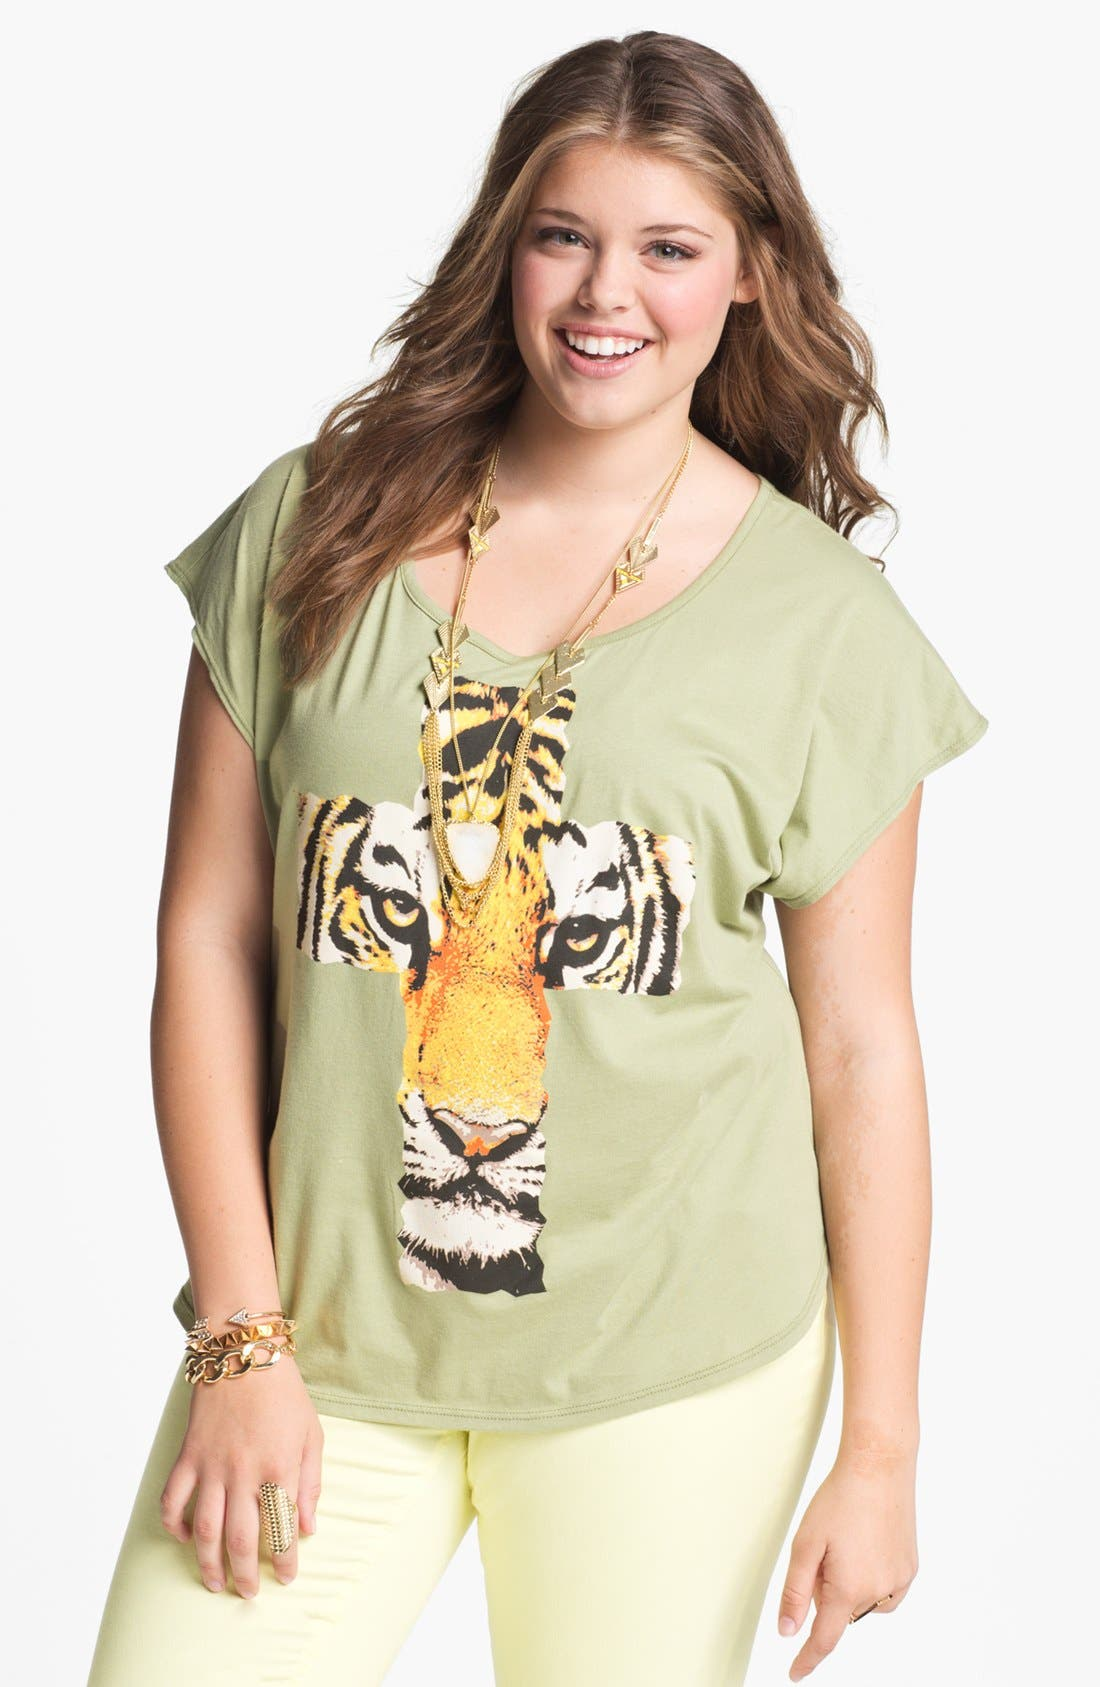 Alternate Image 1 Selected - Pretty Rebel Graphic Cotton Tee (Juniors Plus)